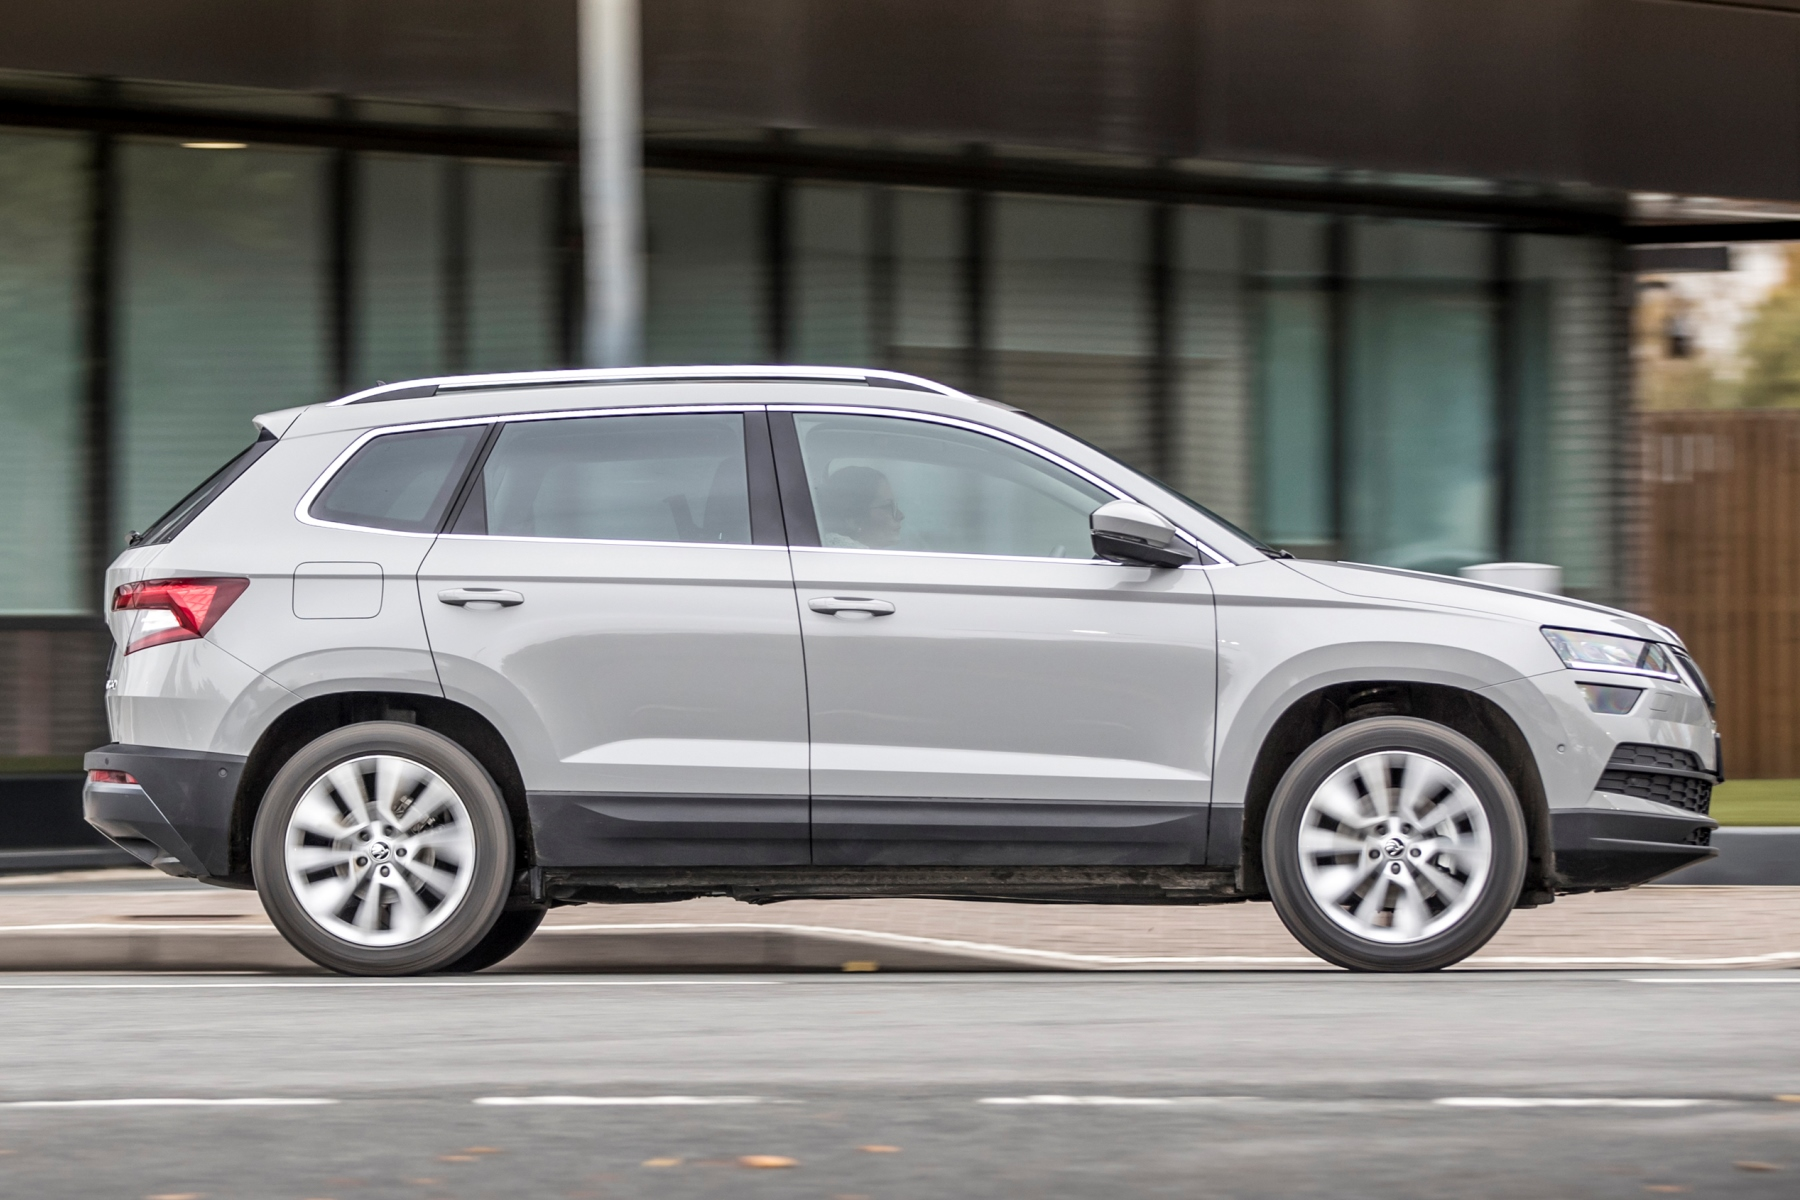 Vw Up Reliability Skoda Karoq Review Automotive Blog